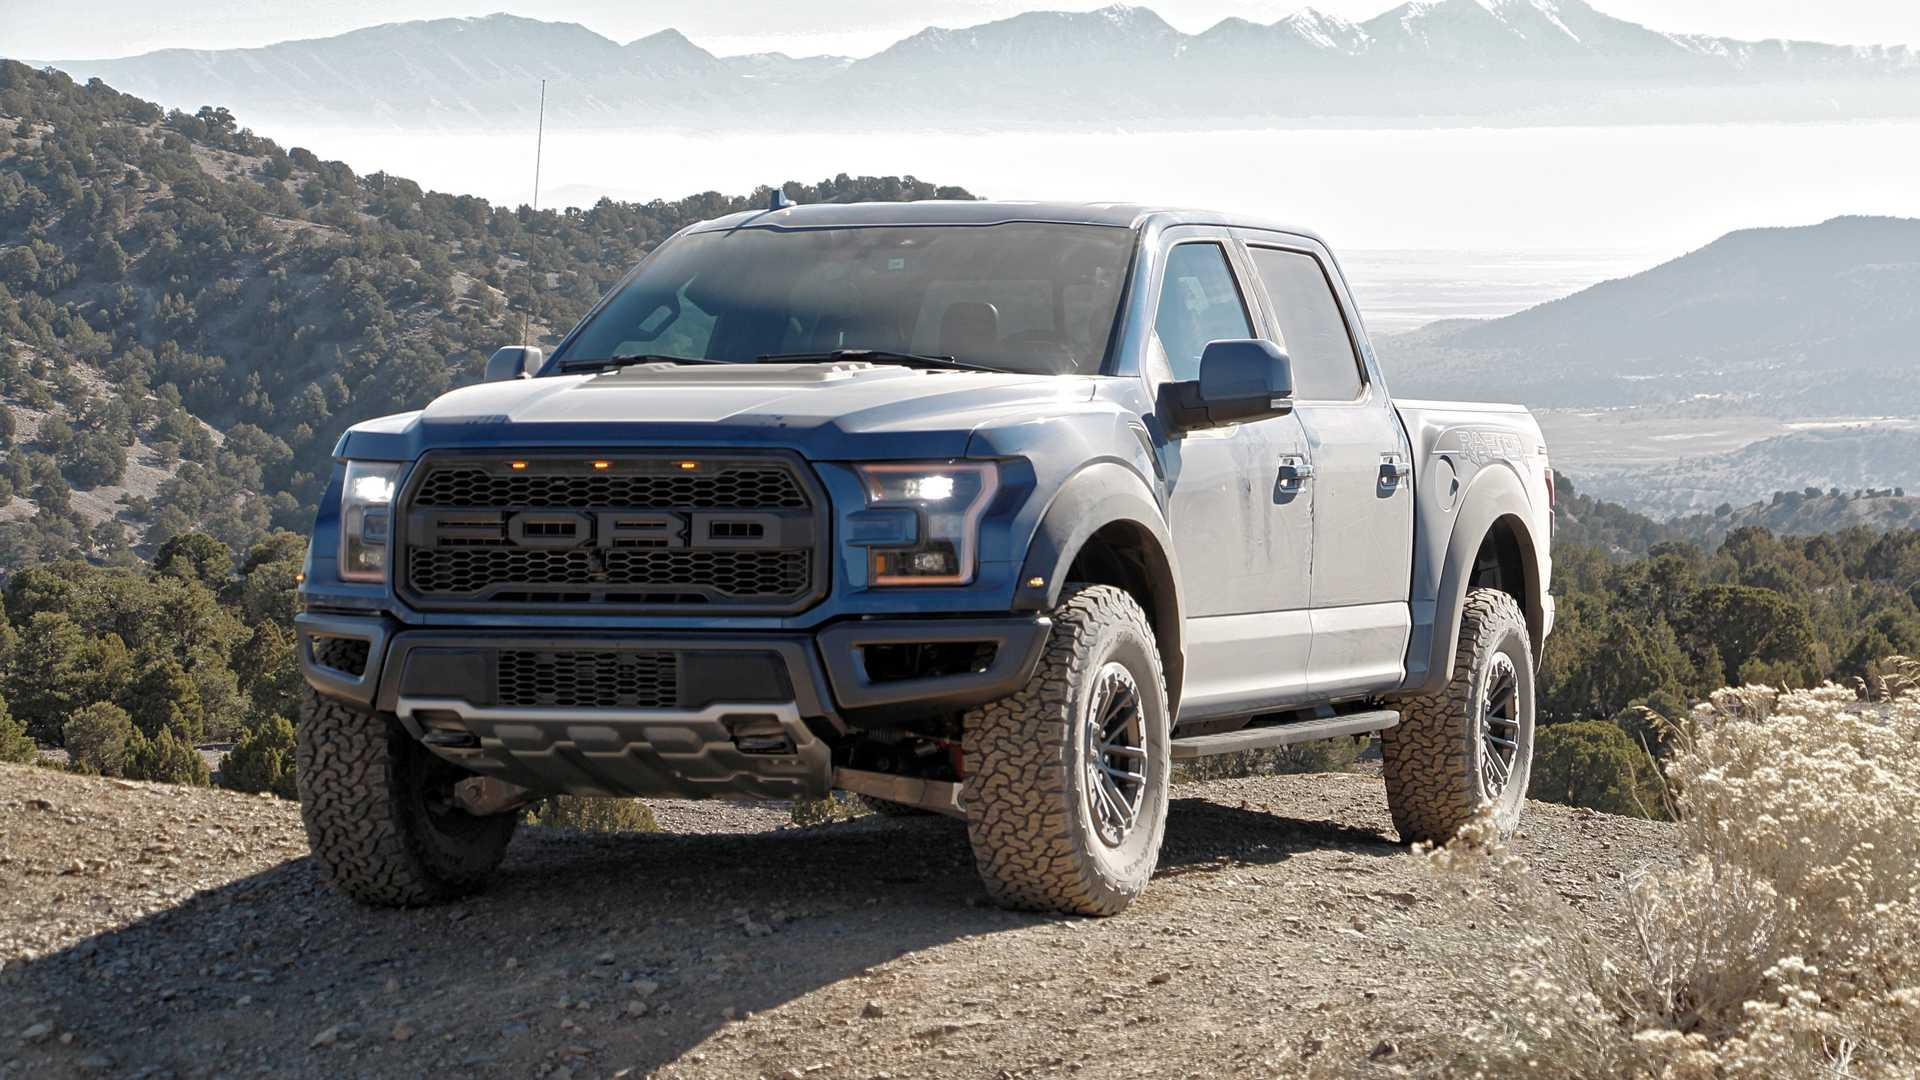 37 All New 2019 All Ford F150 Raptor Wallpaper